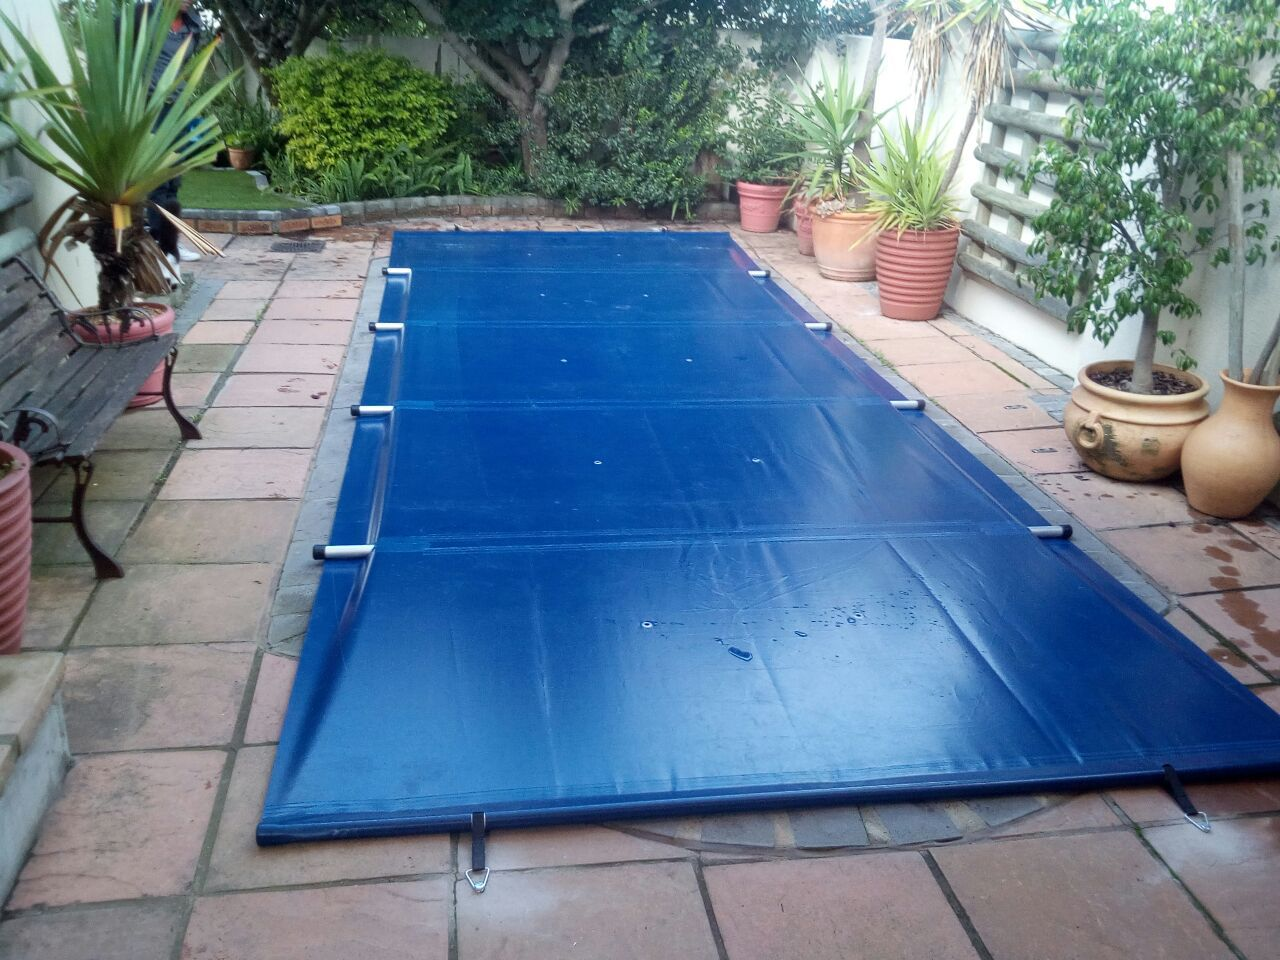 An Inground Swimming Pool Cover Take a Break from Pool